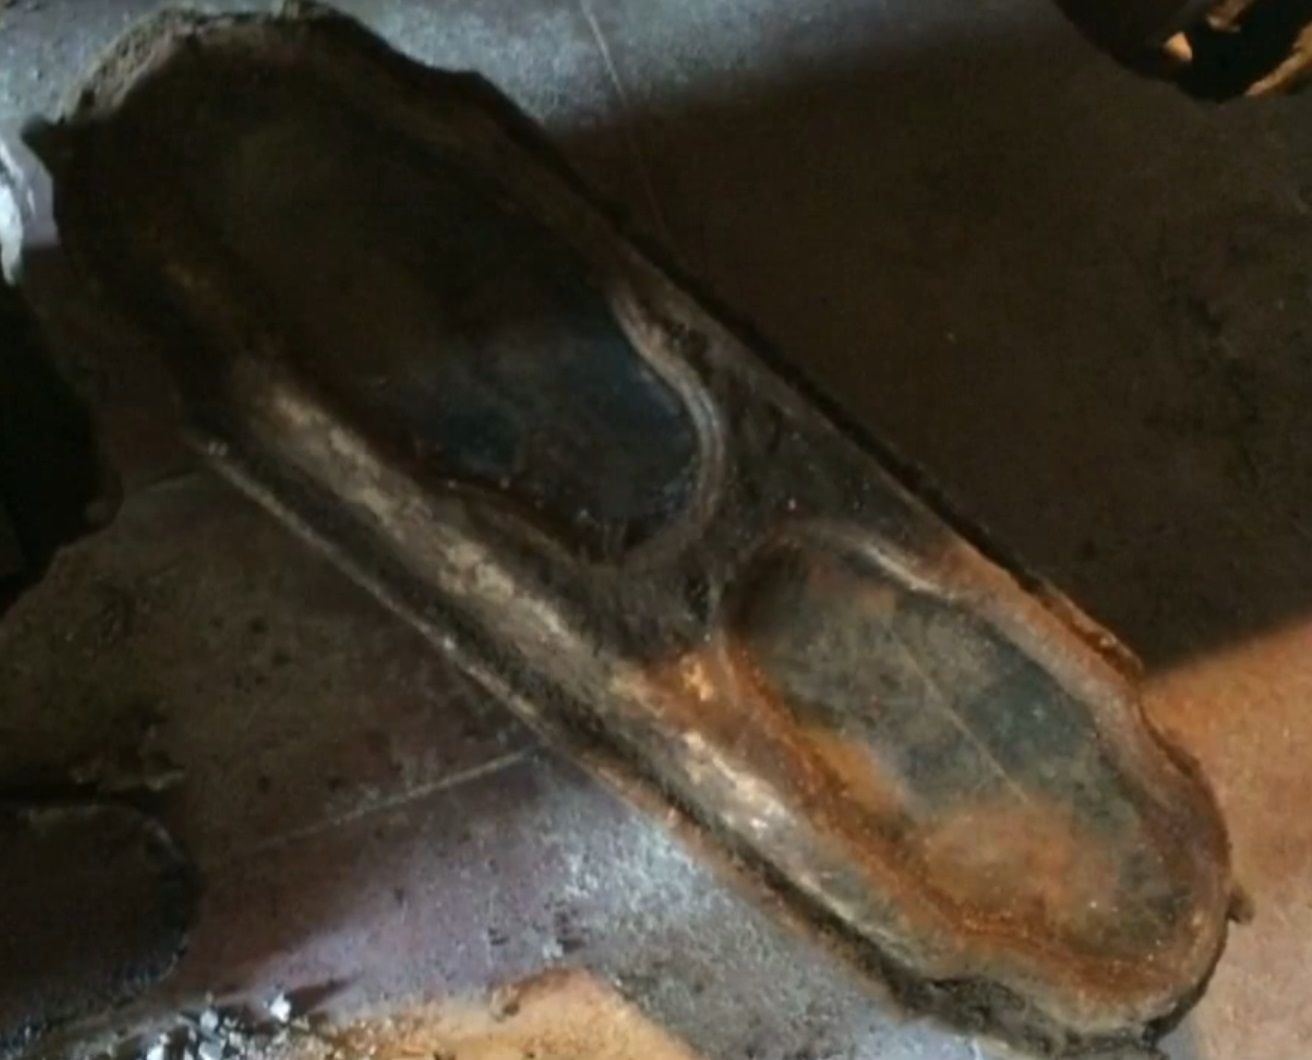 coffin-with-perfectly-preserved-body-of-little-girl-discovered two windows